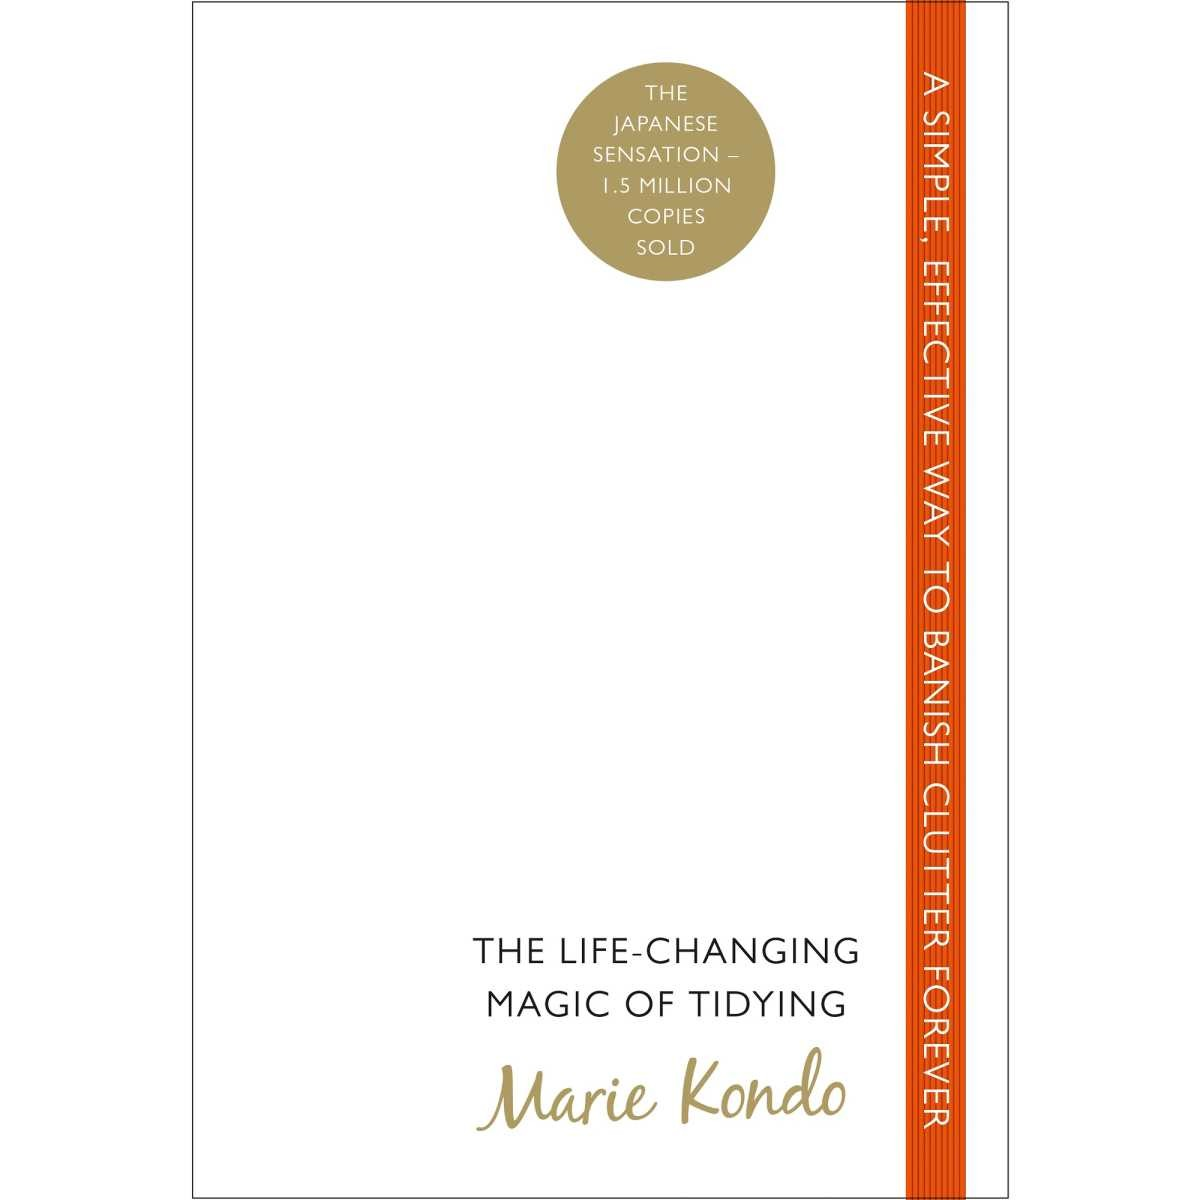 The Life-Changing Magic of Tidying- Marie Kondo